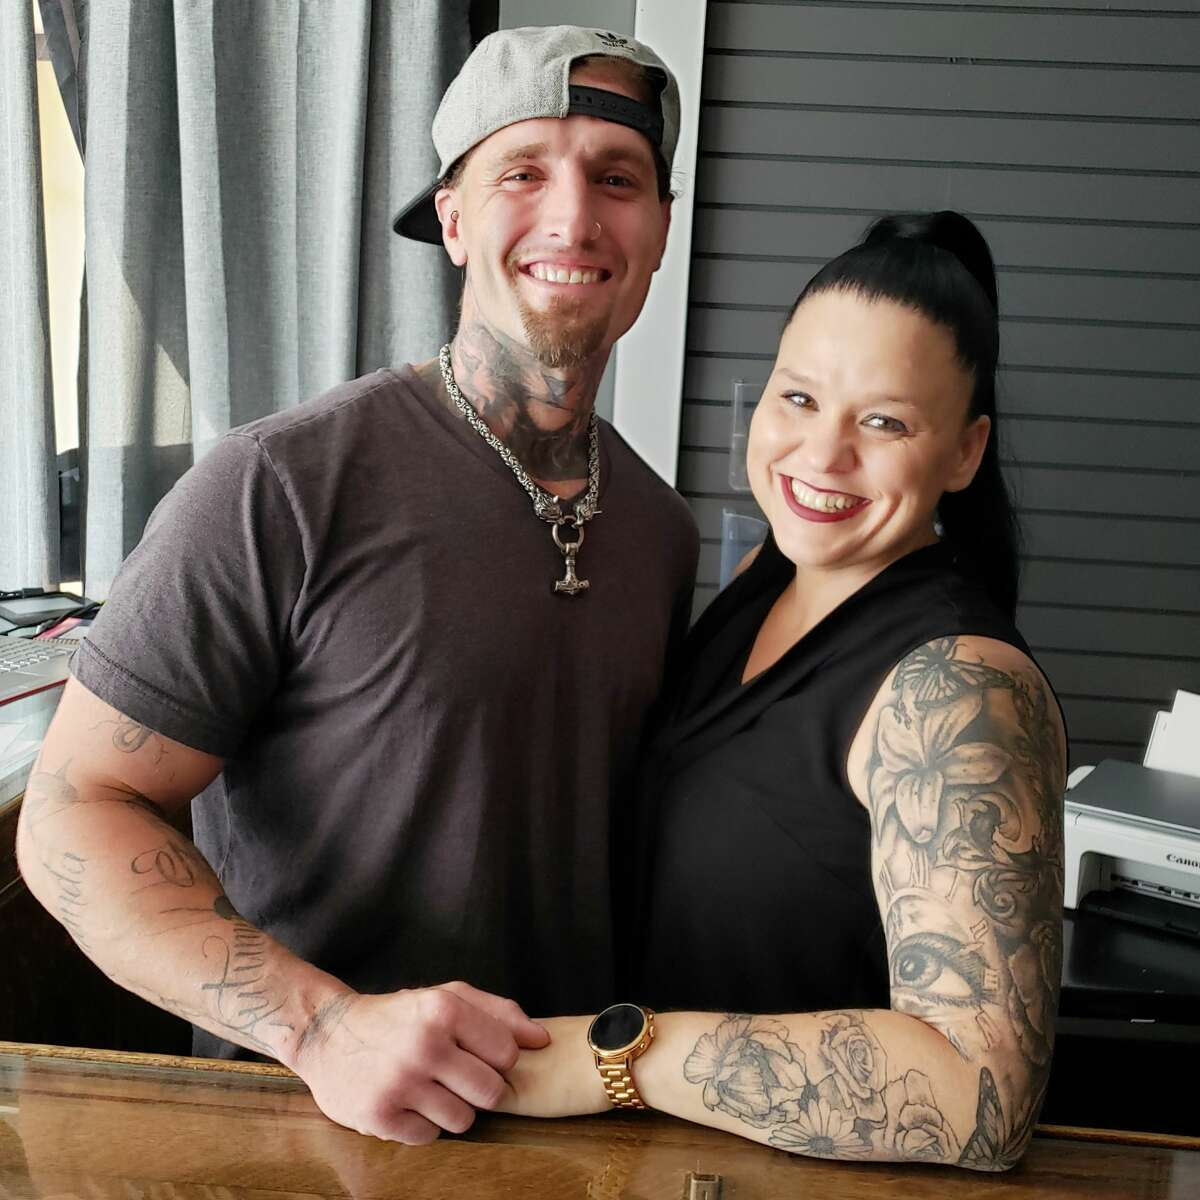 (From left) Tattoo artist Brandon Mecam and Clean Lines Tattoo Company co-owner Kelly Stoudt are shown in their newly opened shop at 336 River Street, in Manistee.